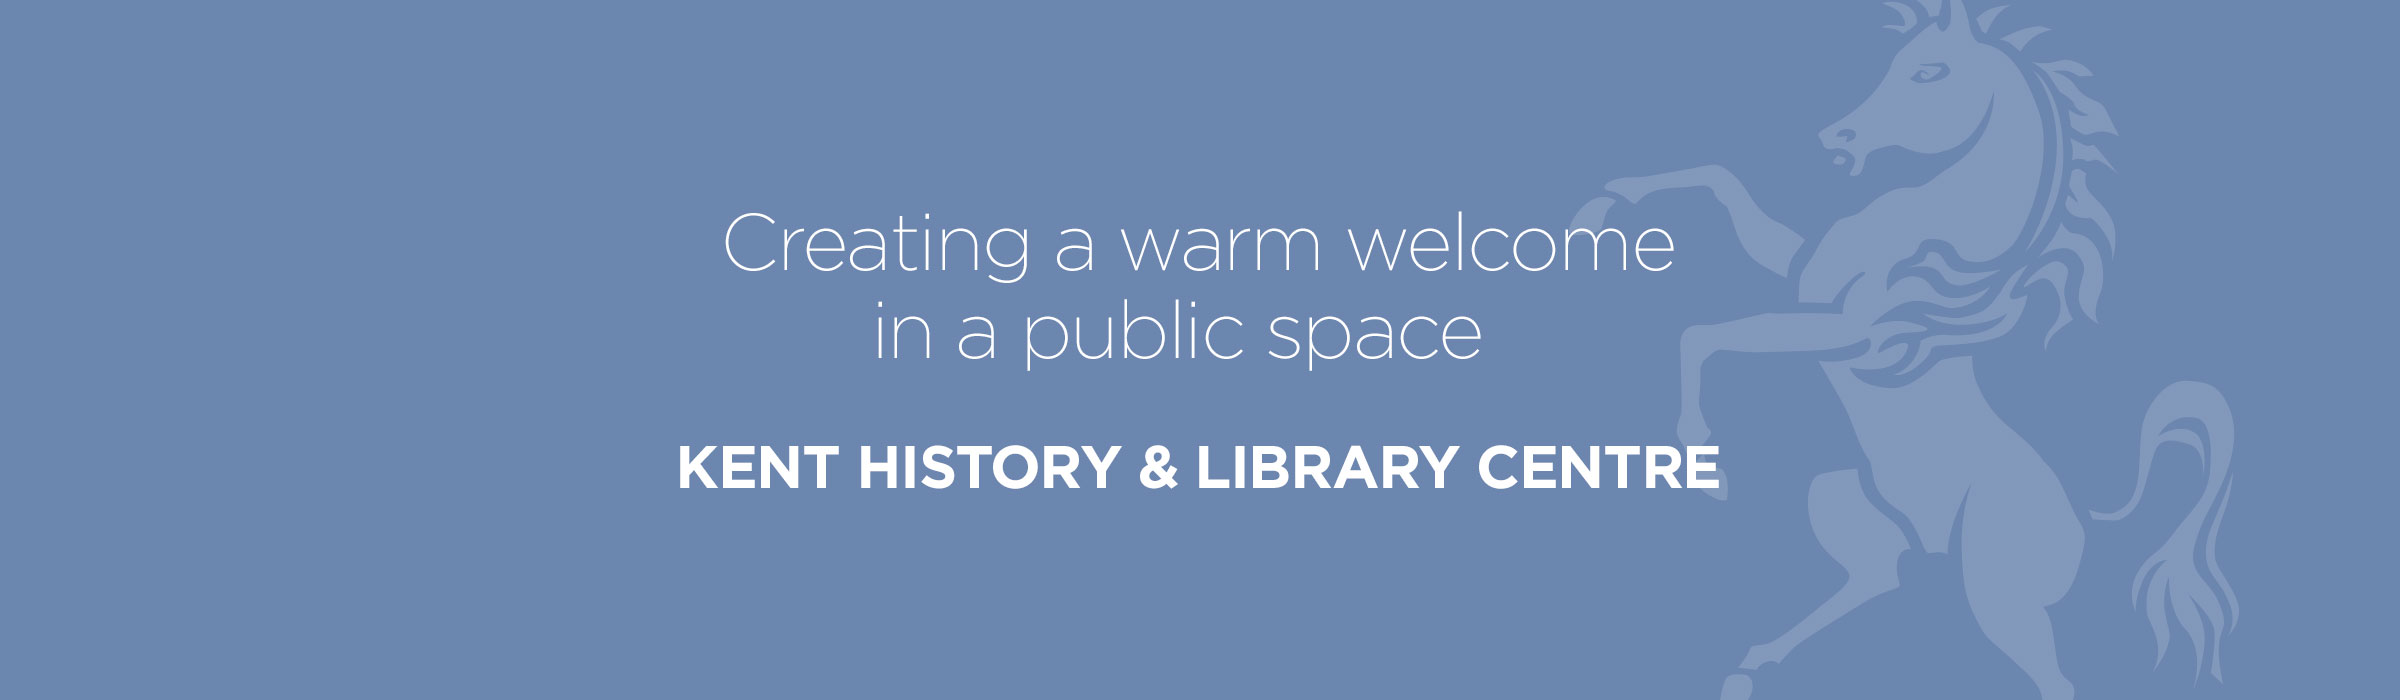 Kent History & Library Centre – Creating a warm welcome in a public space